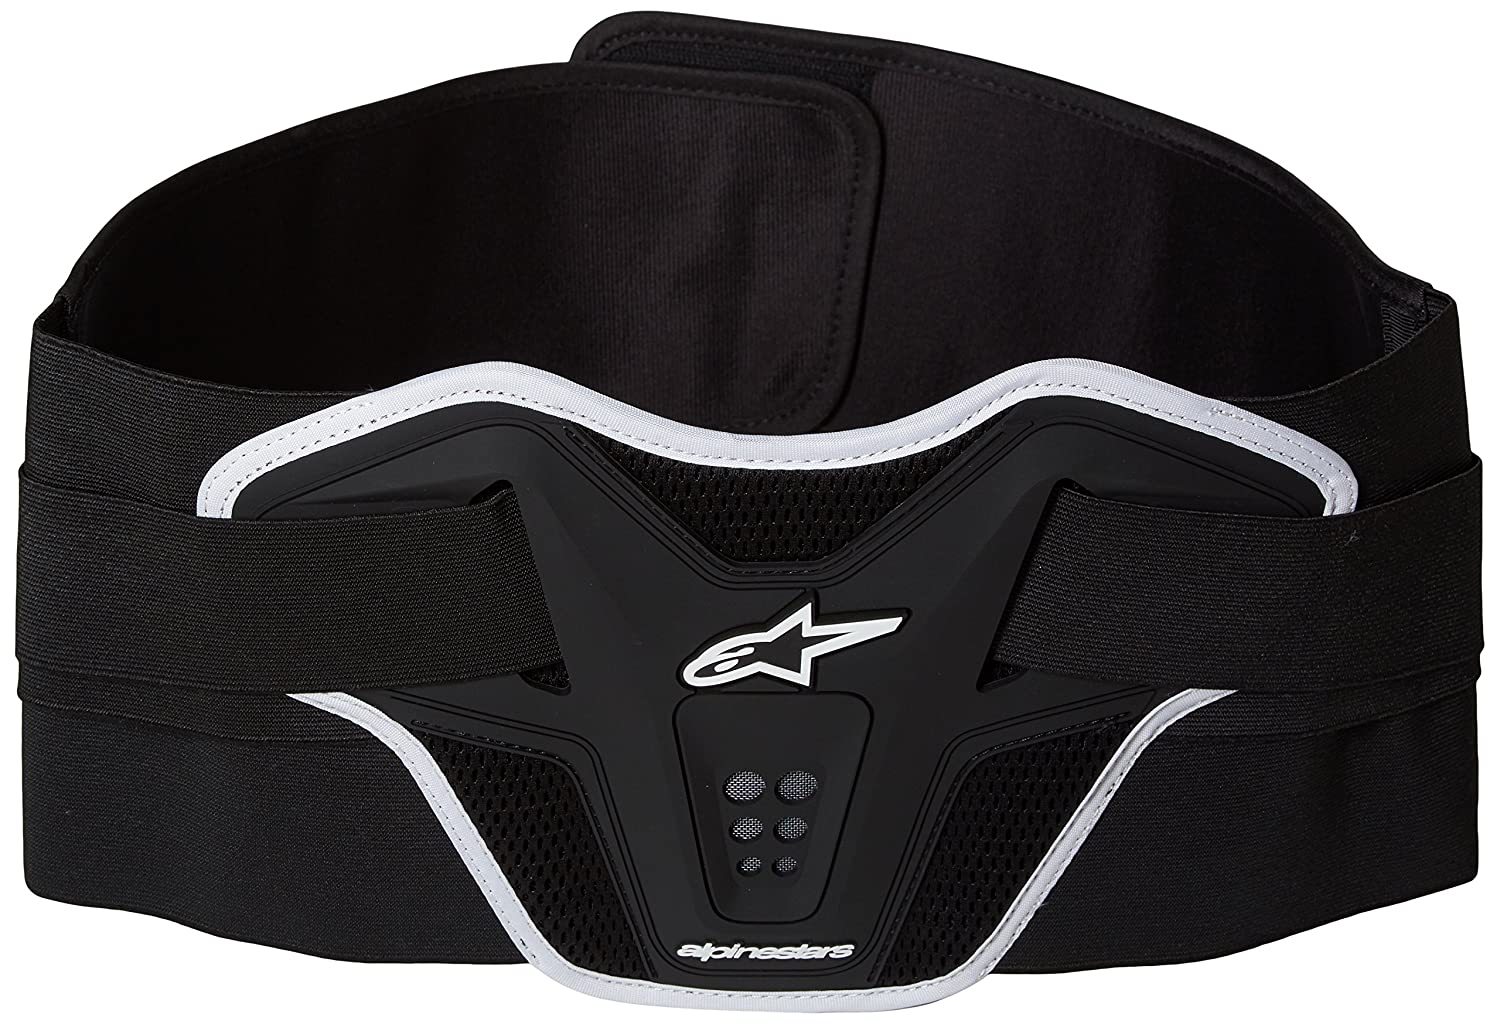 Lumbar Protection from Moto Alpinestars Saturn Kidney Belt 6504612-12-OS